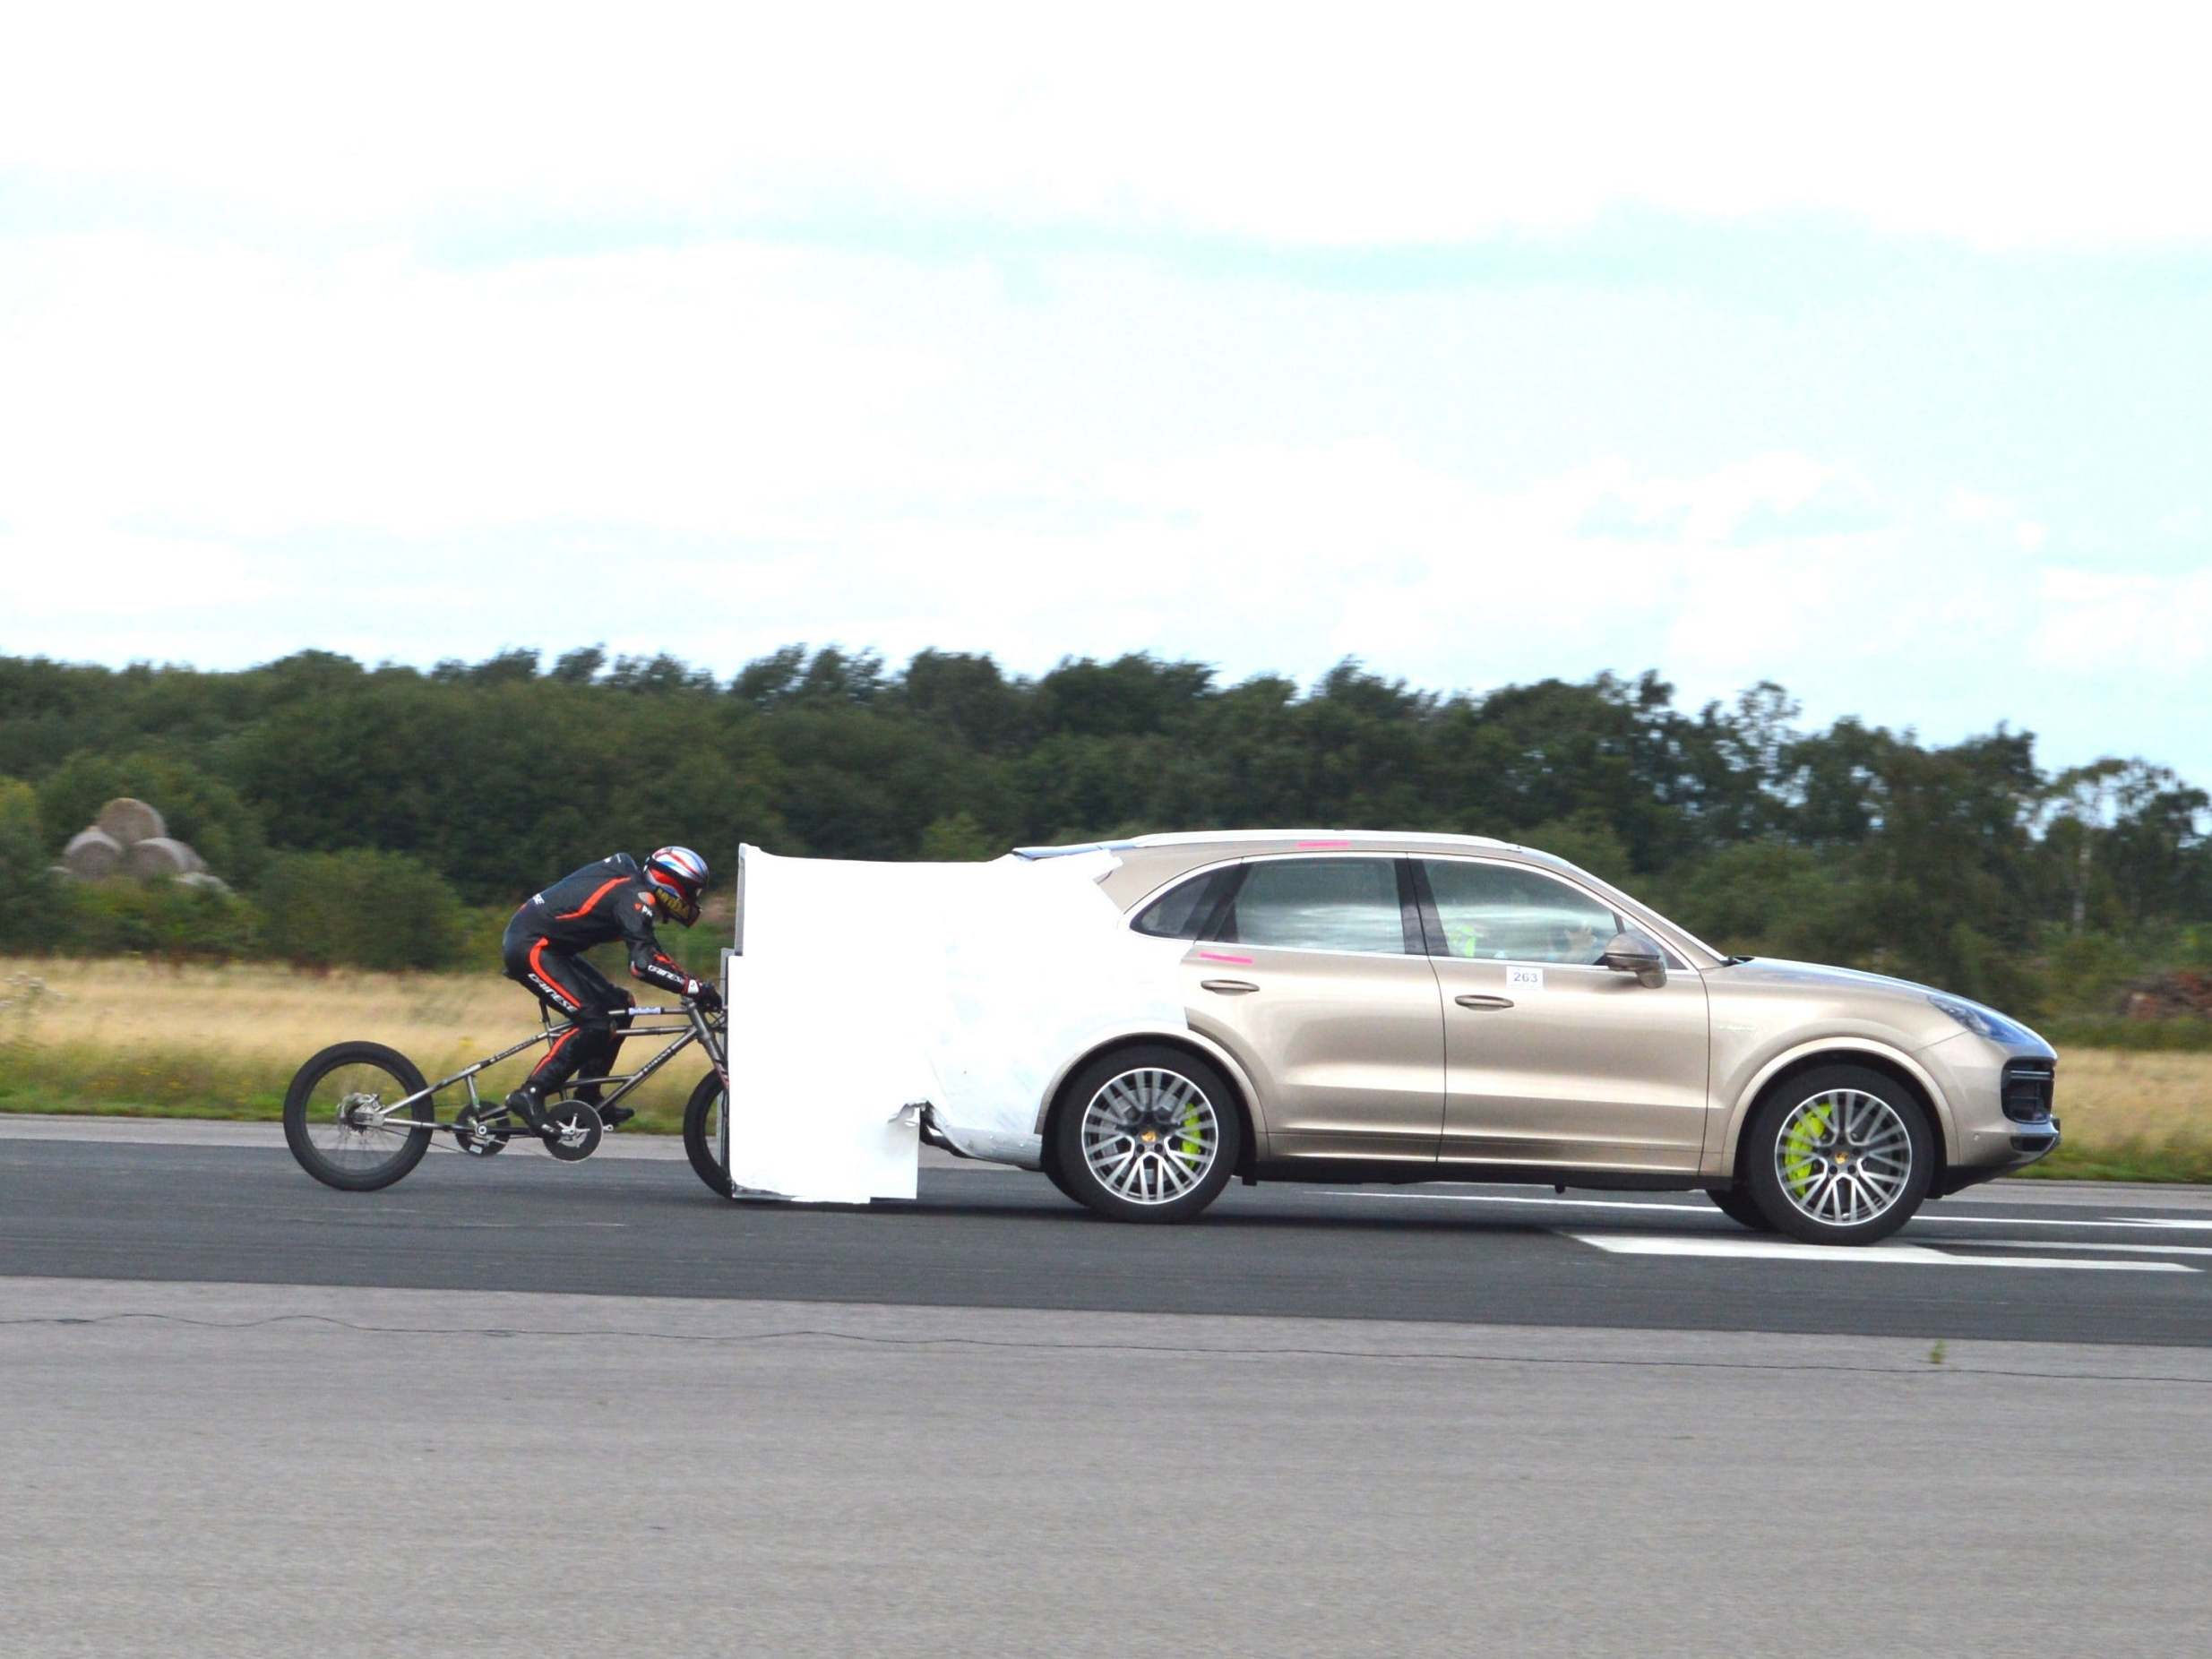 Man goes 174mph on bike in new cycling speed record